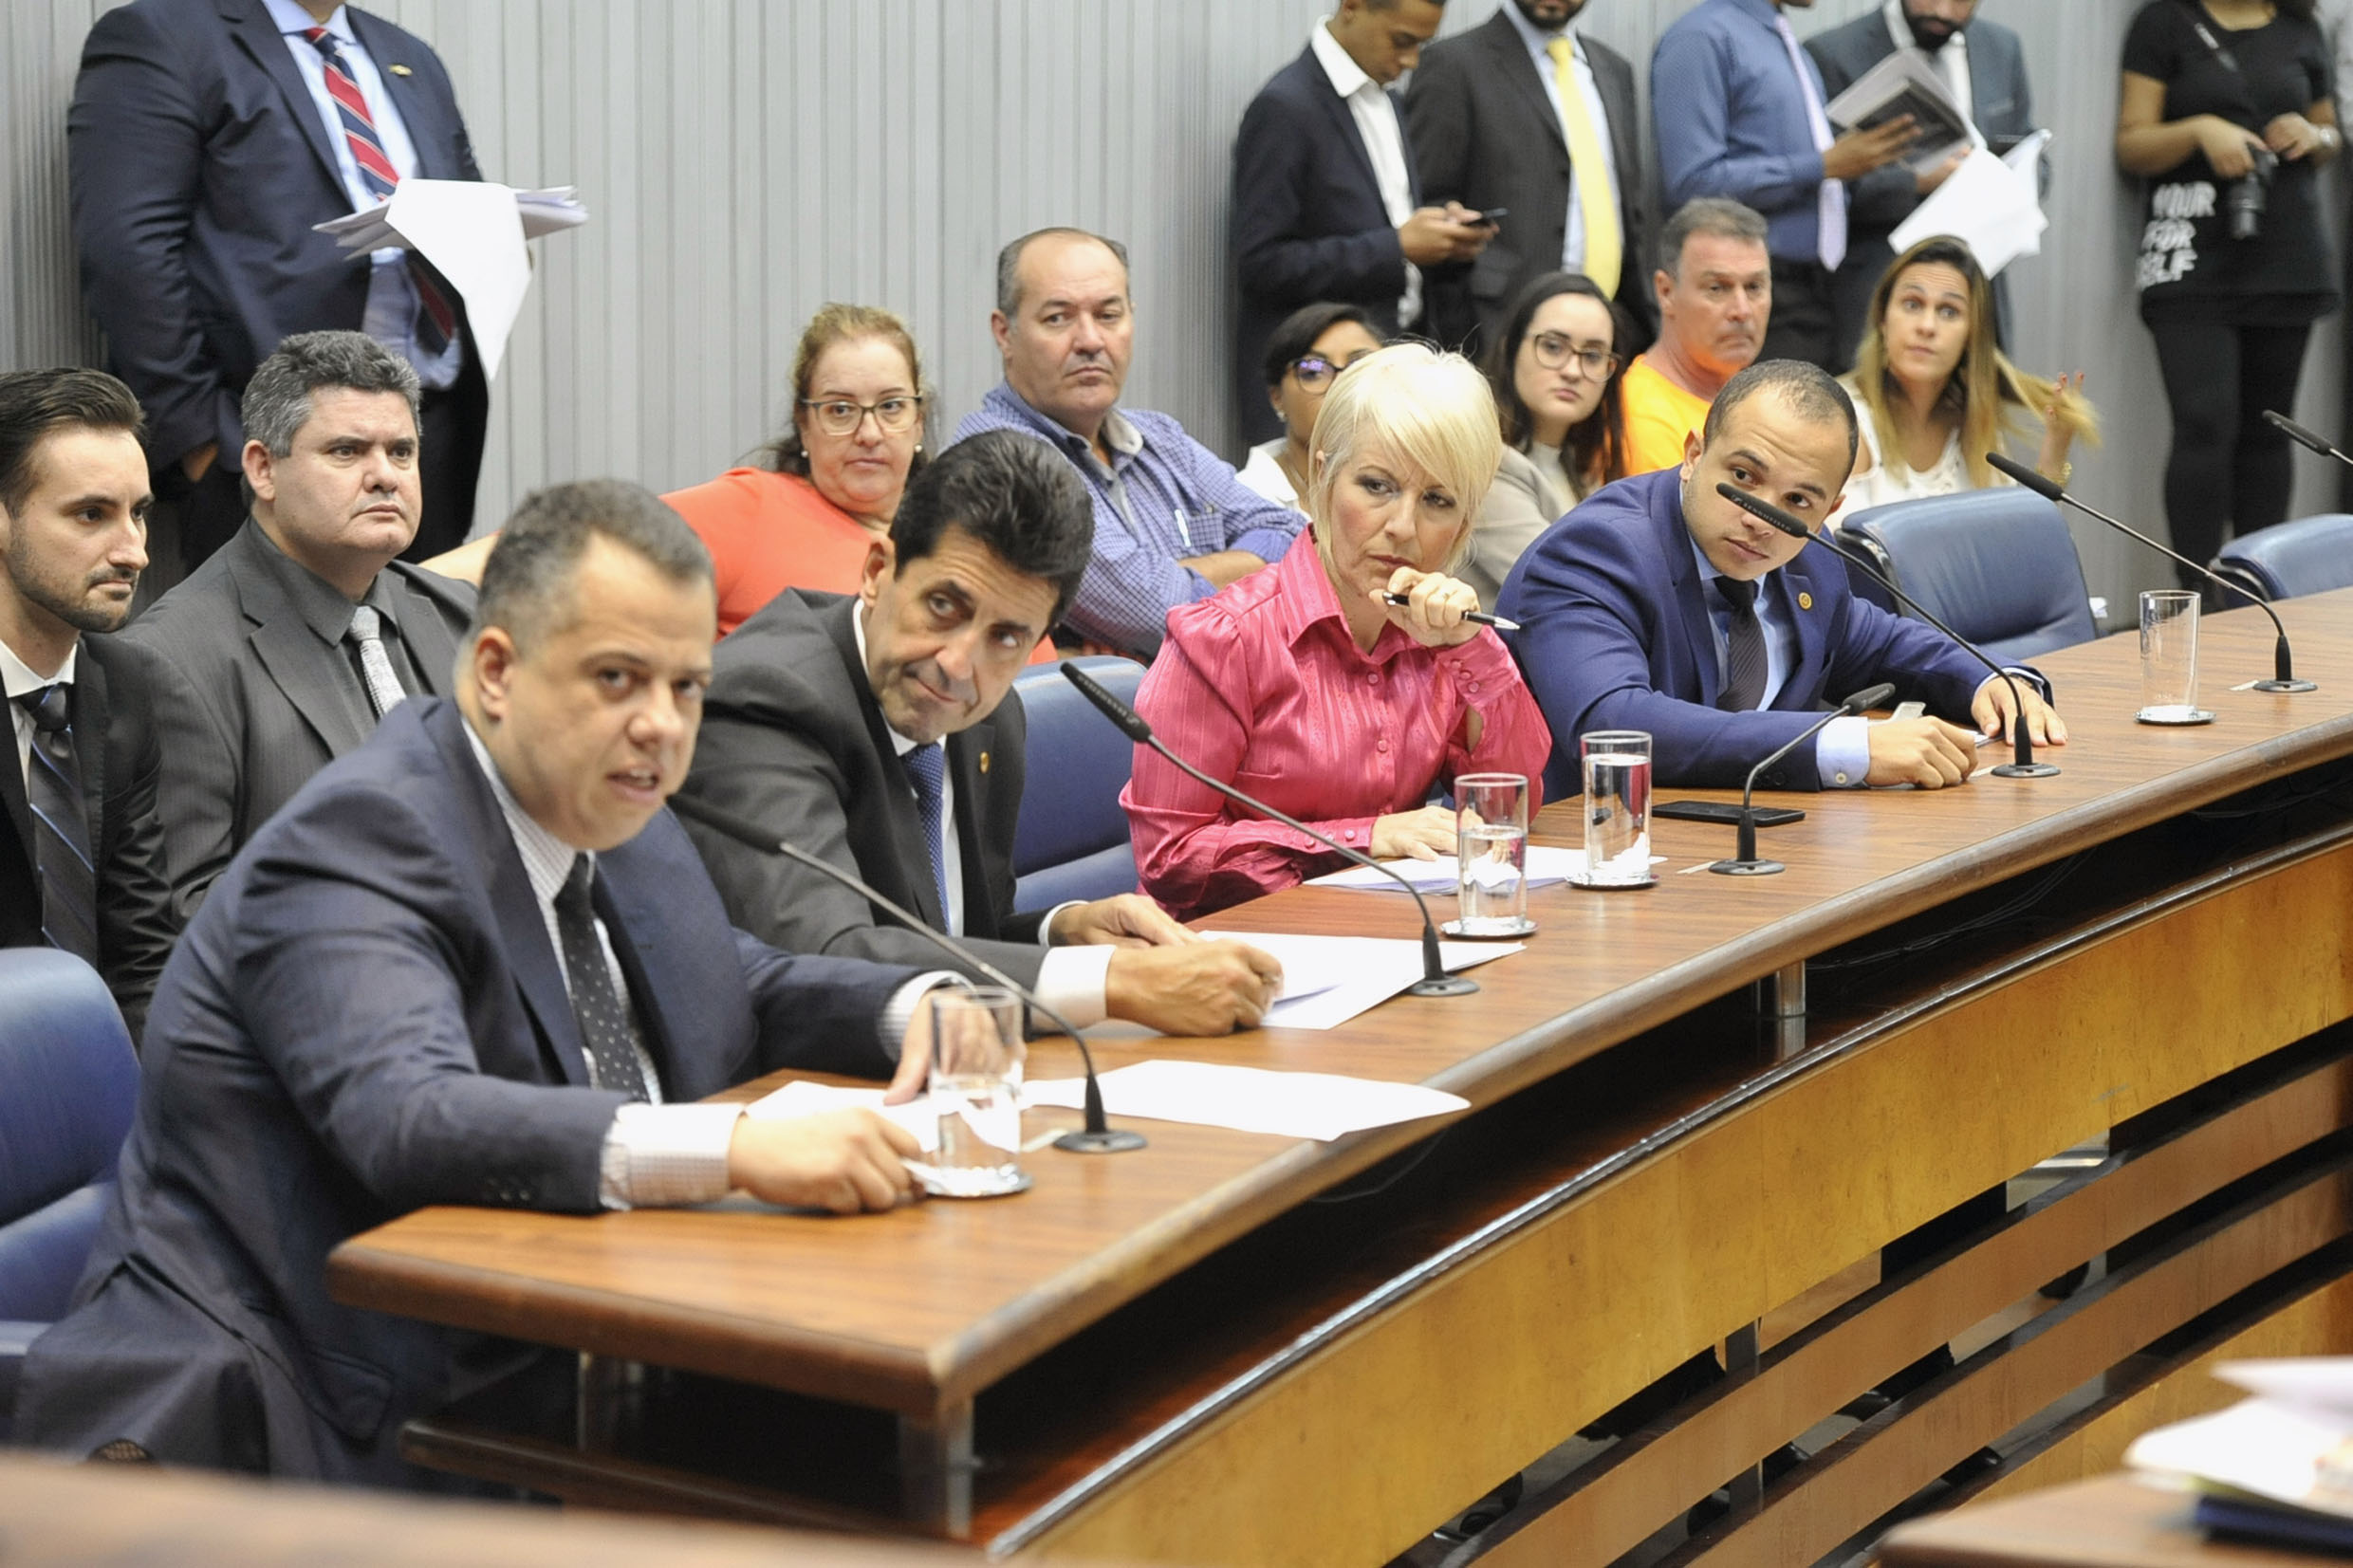 Parlamentares na comissão<a style='float:right' href='https://www3.al.sp.gov.br/repositorio/noticia/N-05-2019/fg234429.jpg' target=_blank><img src='/_img/material-file-download-white.png' width='14px' alt='Clique para baixar a imagem'></a>